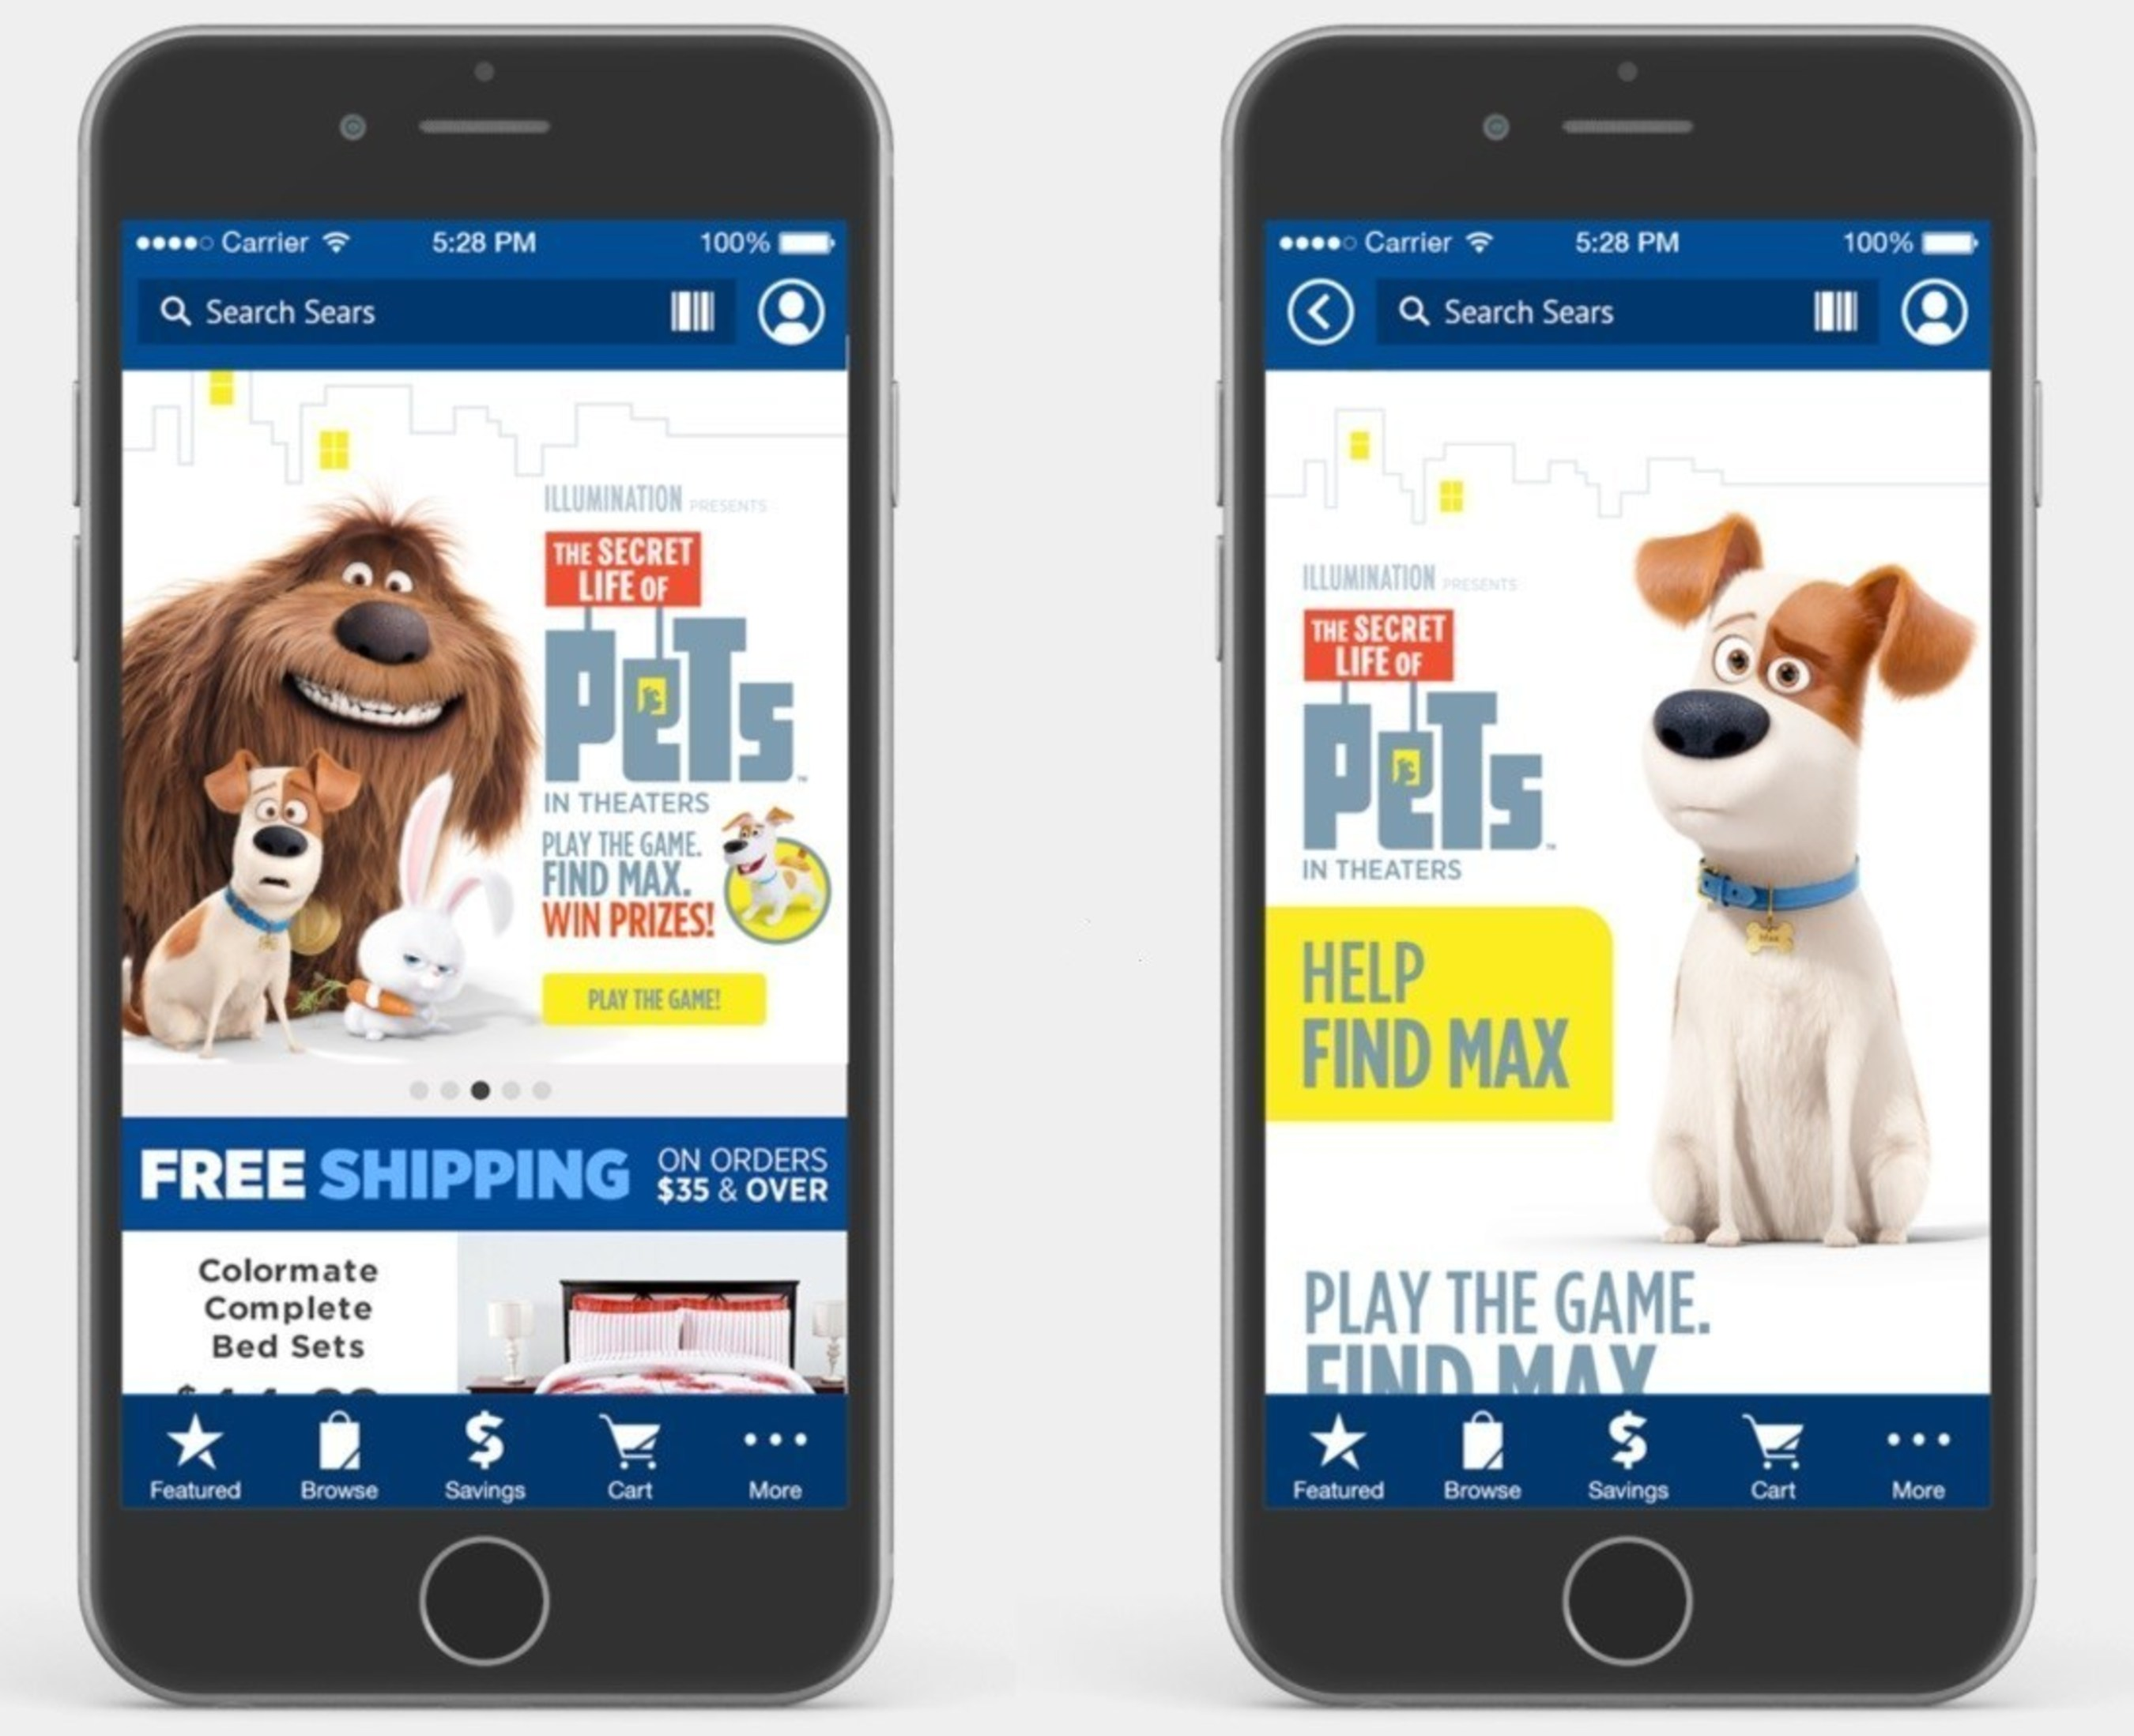 """Catching the wave of engaging, real-world app play, Sears teamed with the makers of the summer blockbuster """"The Secret Life of Pets,"""" bringing the characters to the Sears app for a fun interactive game. To play the """"Find Max"""" game, users launch the Sears app in-store then search for clues marked with a QR code. When all three QR codes are scanned, Max's secret location is revealed, unlocking opportunities to enter sweepstakes, earn instant Shop Your Way points and more. Text """"FINDMAX"""" to 73277 to download..."""